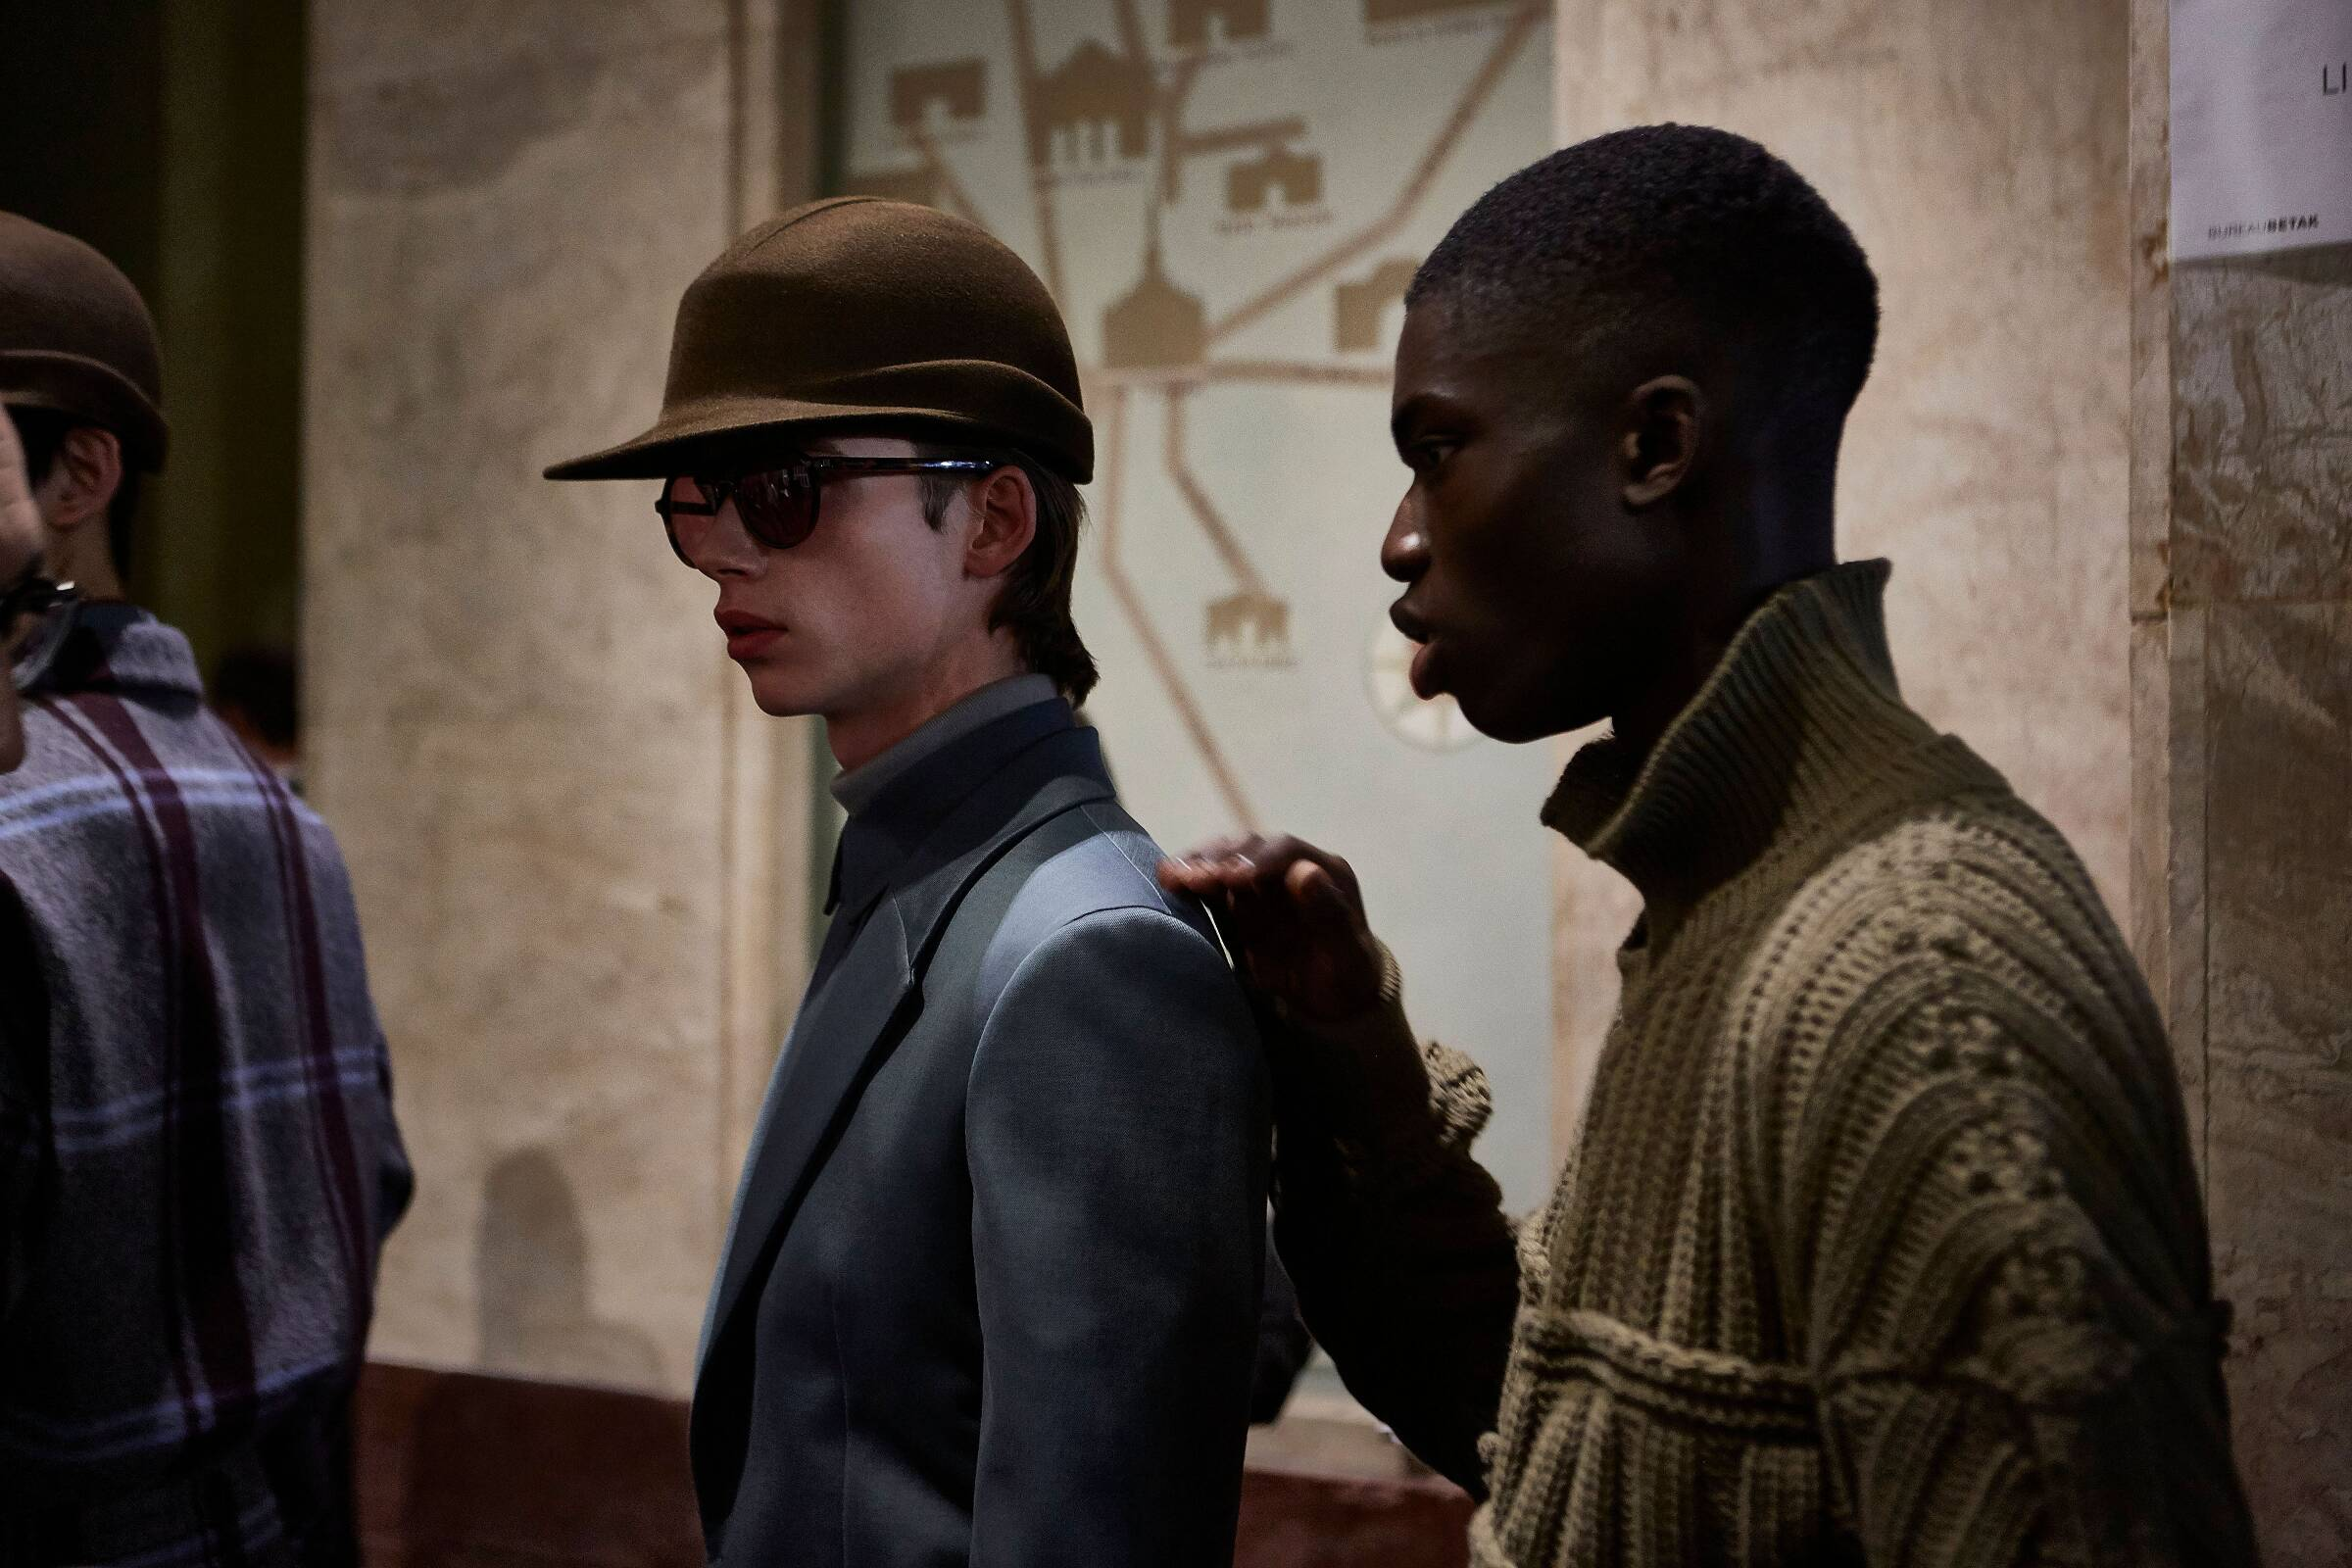 Men Models 2019 Backstage Ermenegildo Zegna